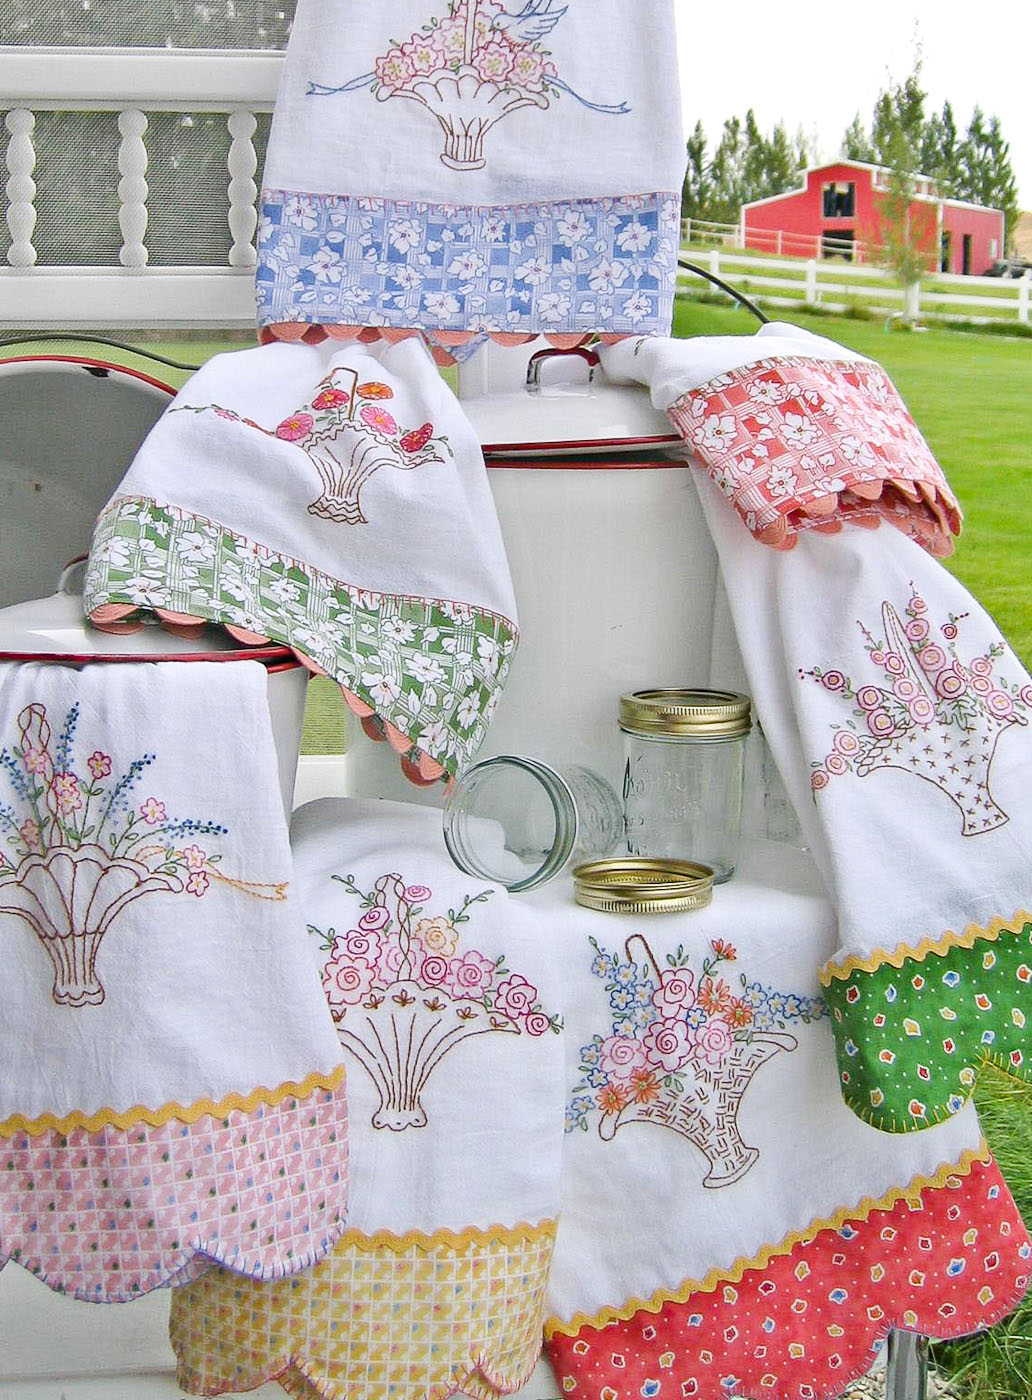 Kitchen Towel Embroidery Patterns Hand Embroidery Pattern Grandmas Tea Towels